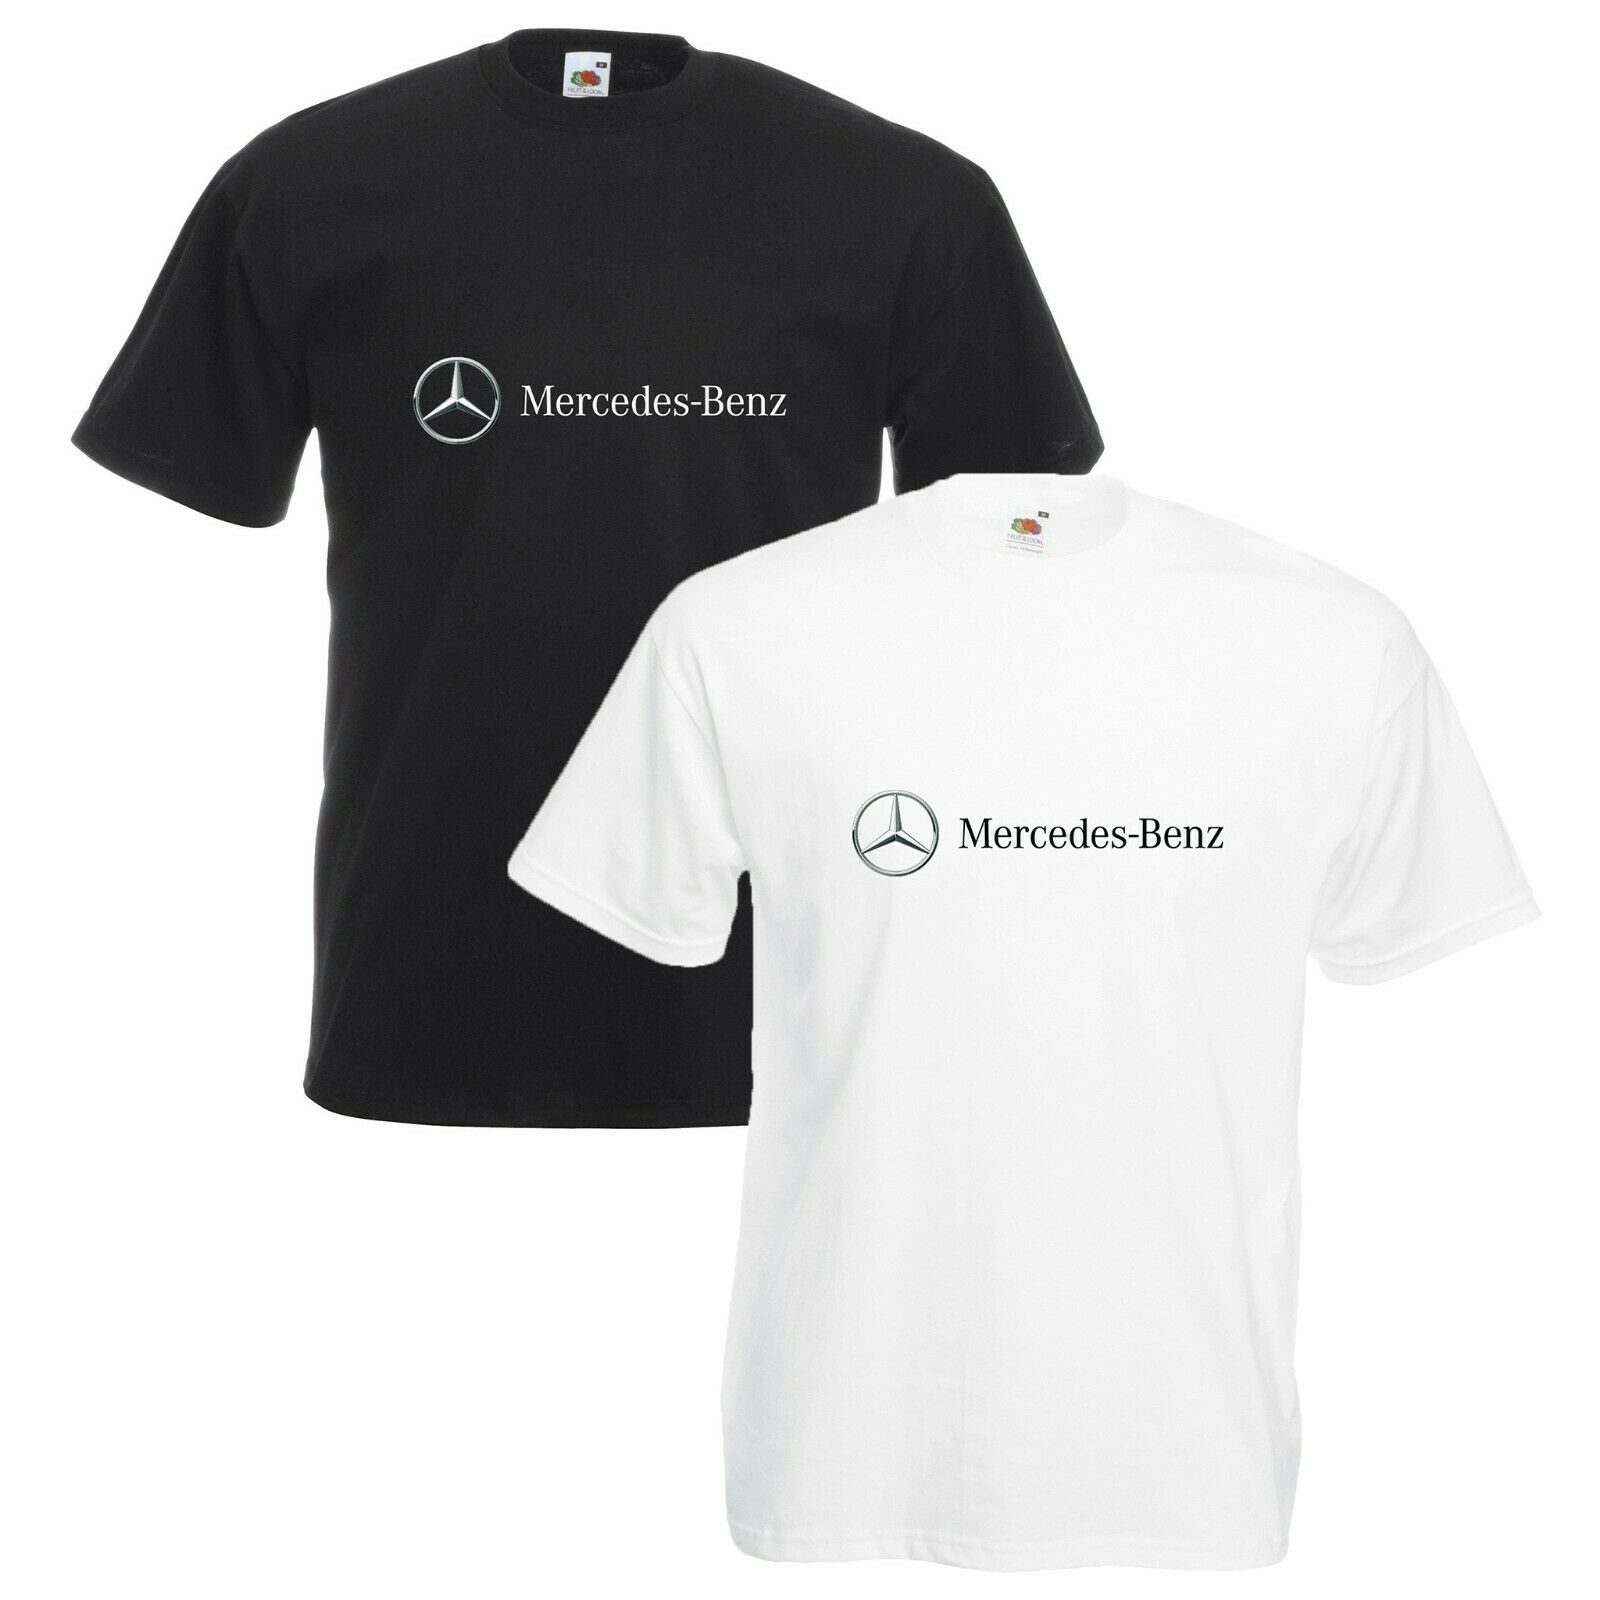 Mercedes T-Shirt Car Enthusiast Merc Badge & Text Unisex Size S-3XL